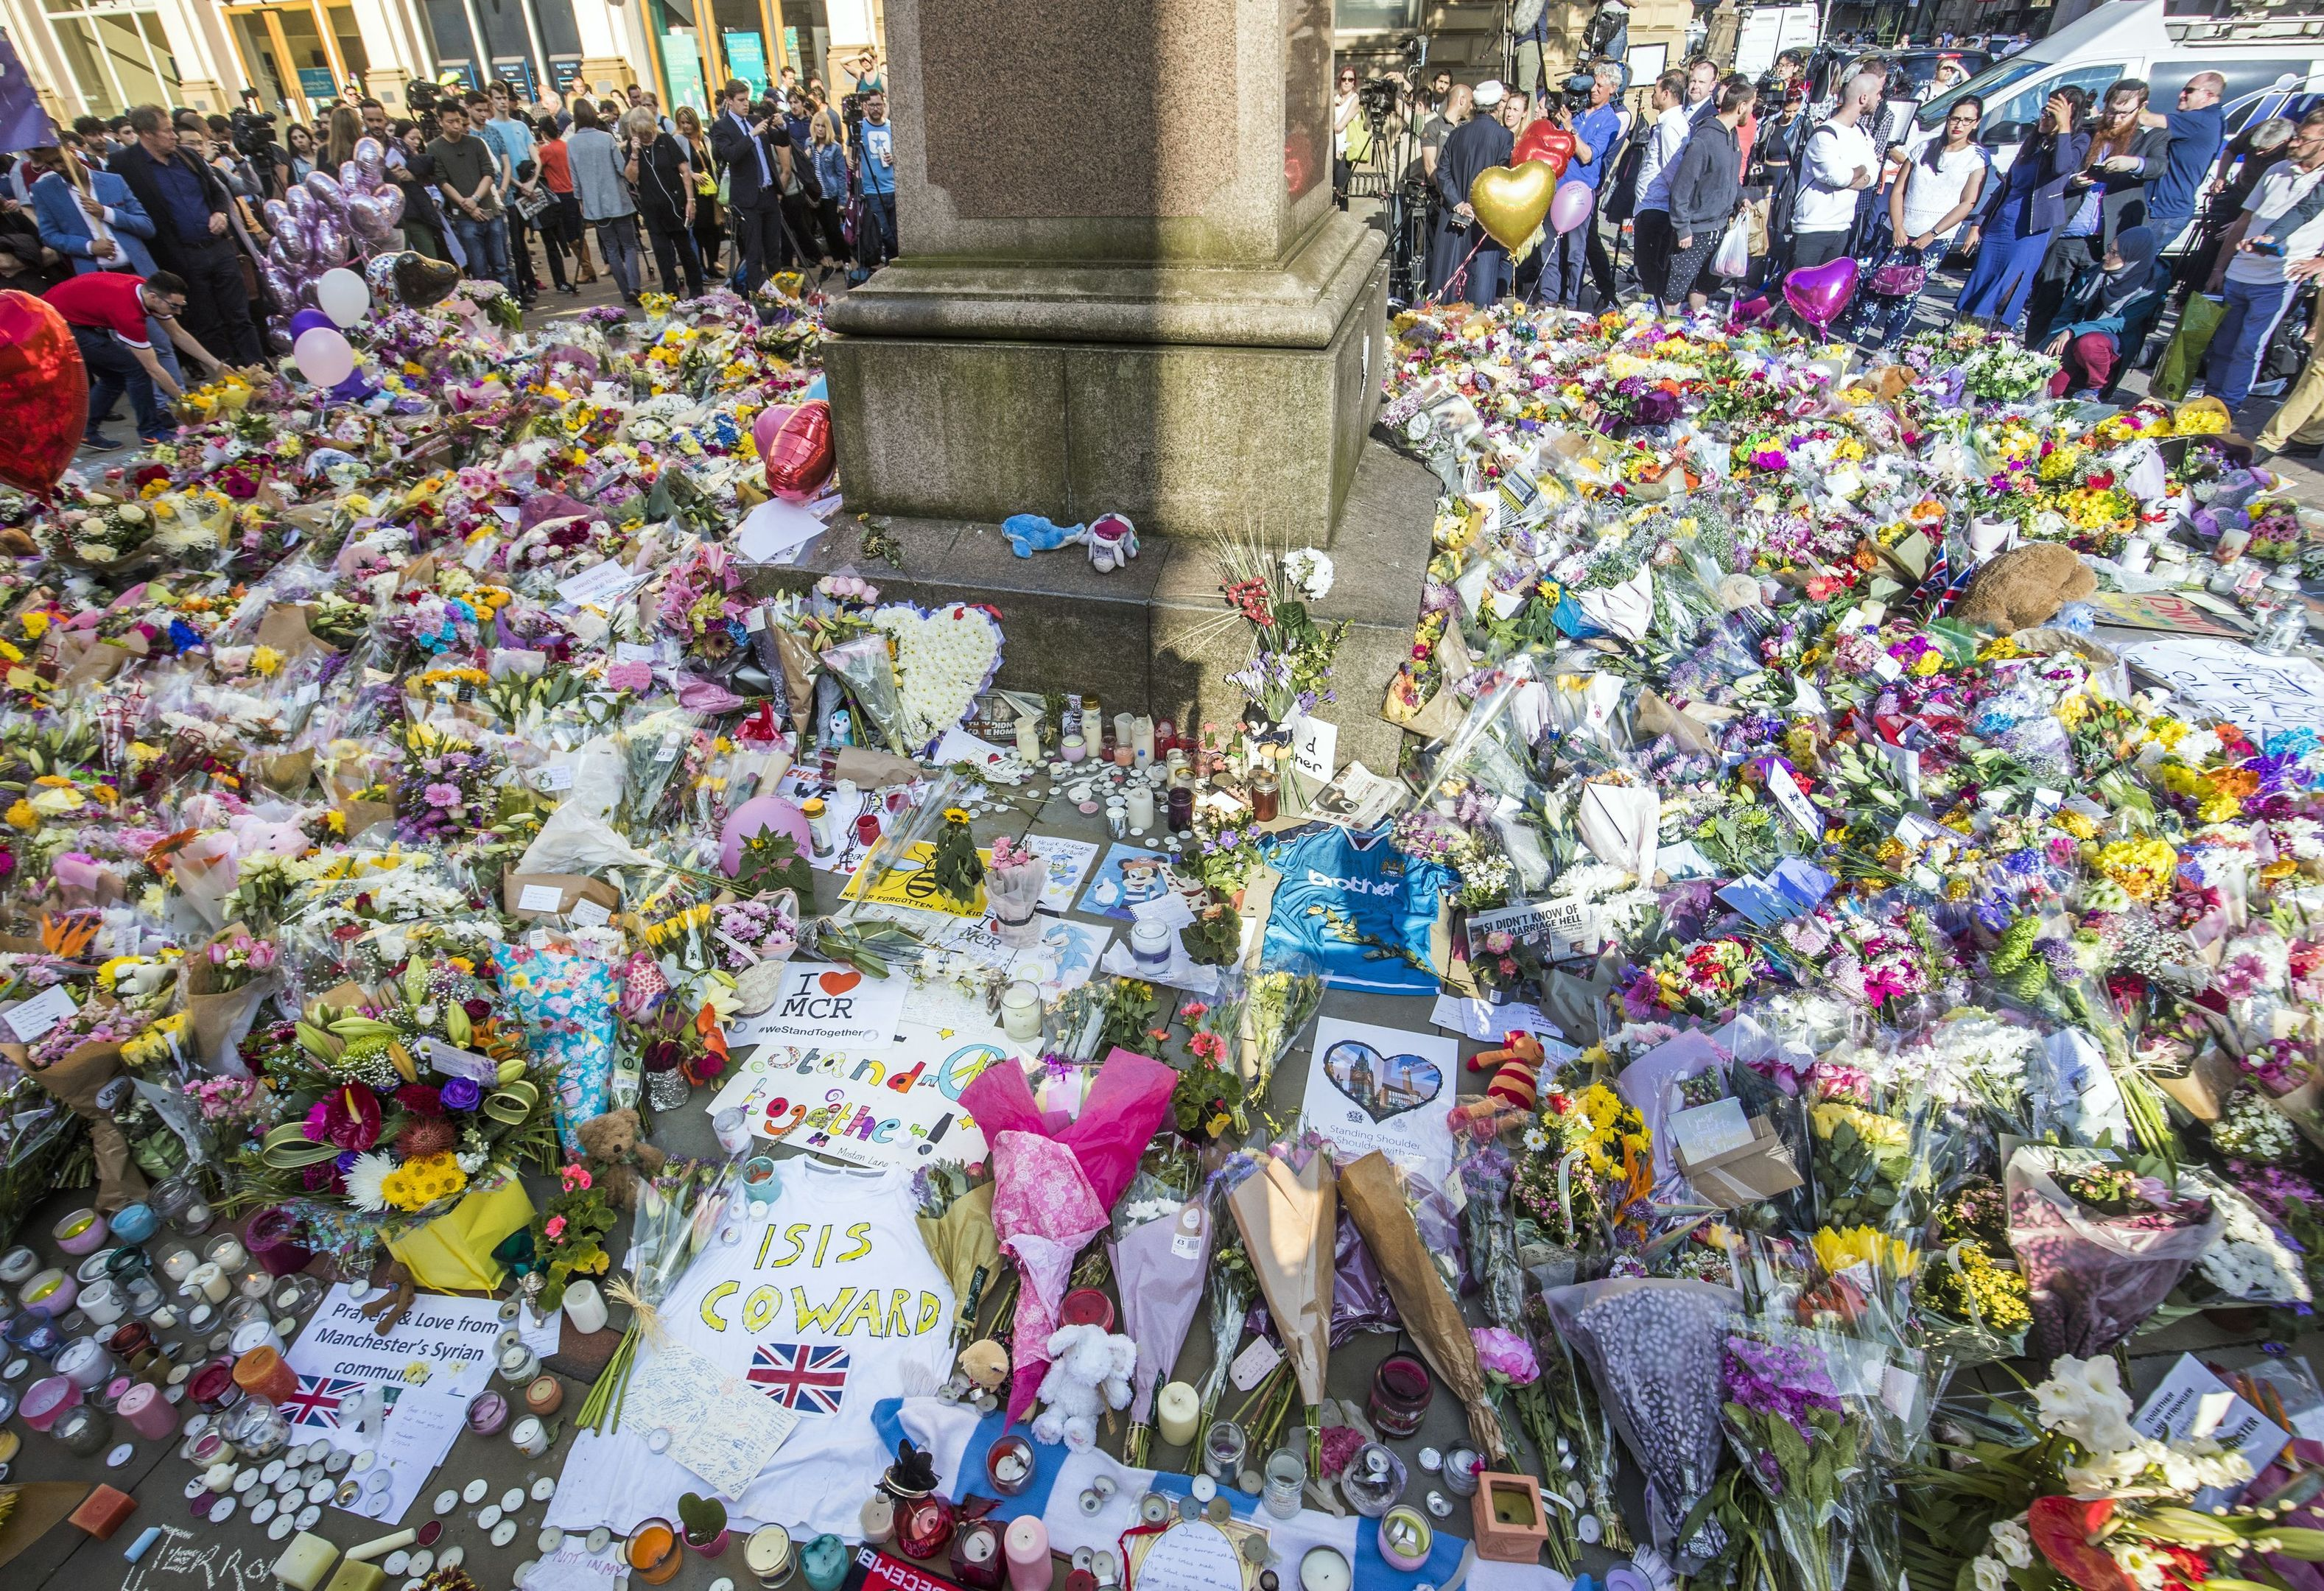 Floral tributes to the Manchester Arena victims (Danny Lawson/PA Wire)